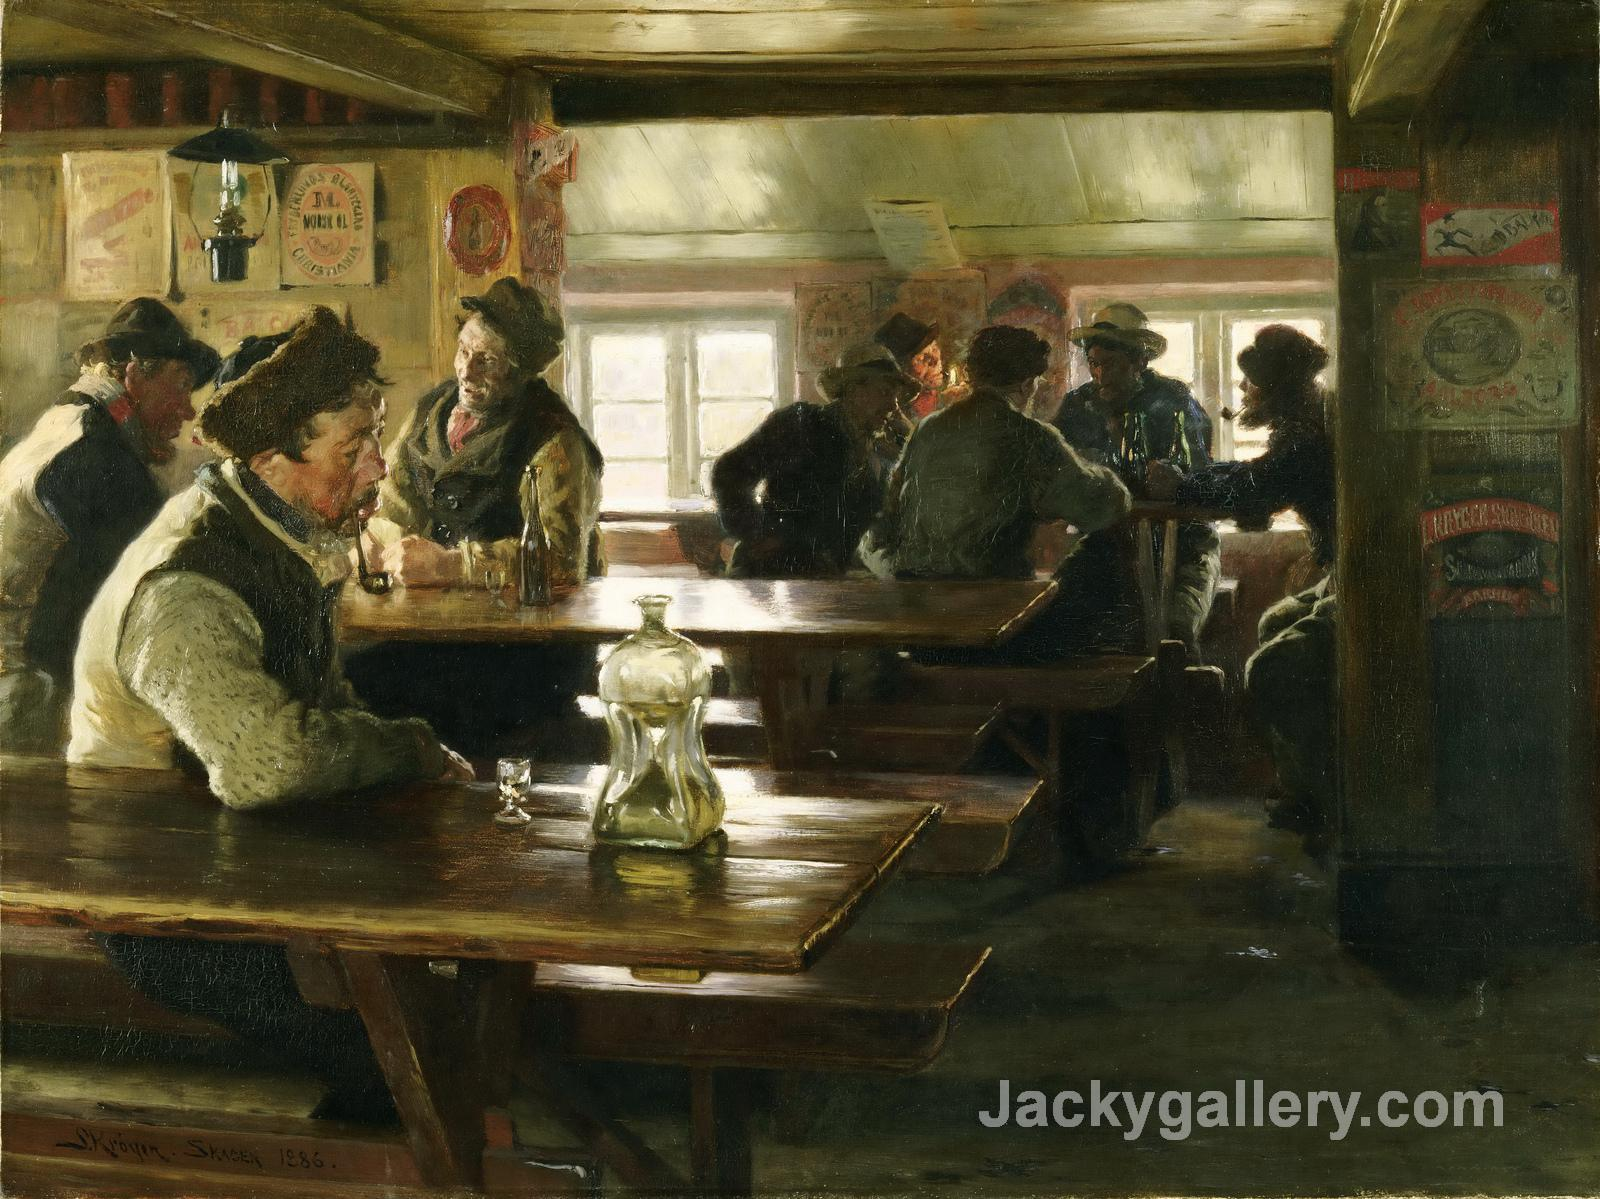 Interior of a Tavern by Peder Severin Kroyer paintings reproduction